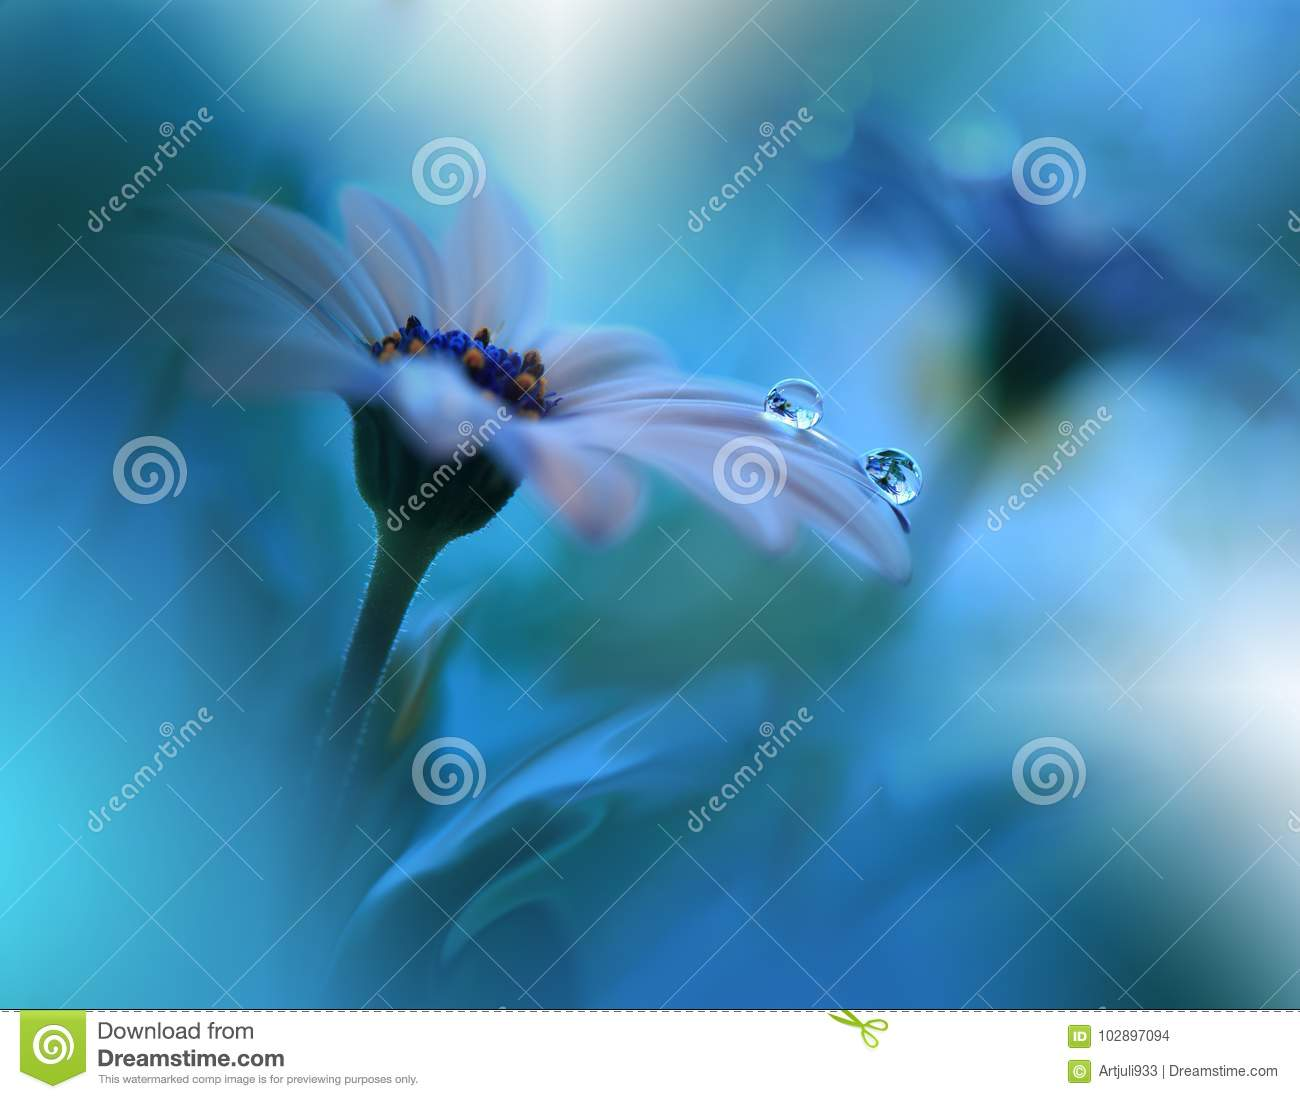 Beautiful Flowers Reflected In The Water Ocean ConceptTranquil Abstract Closeup Art Photography